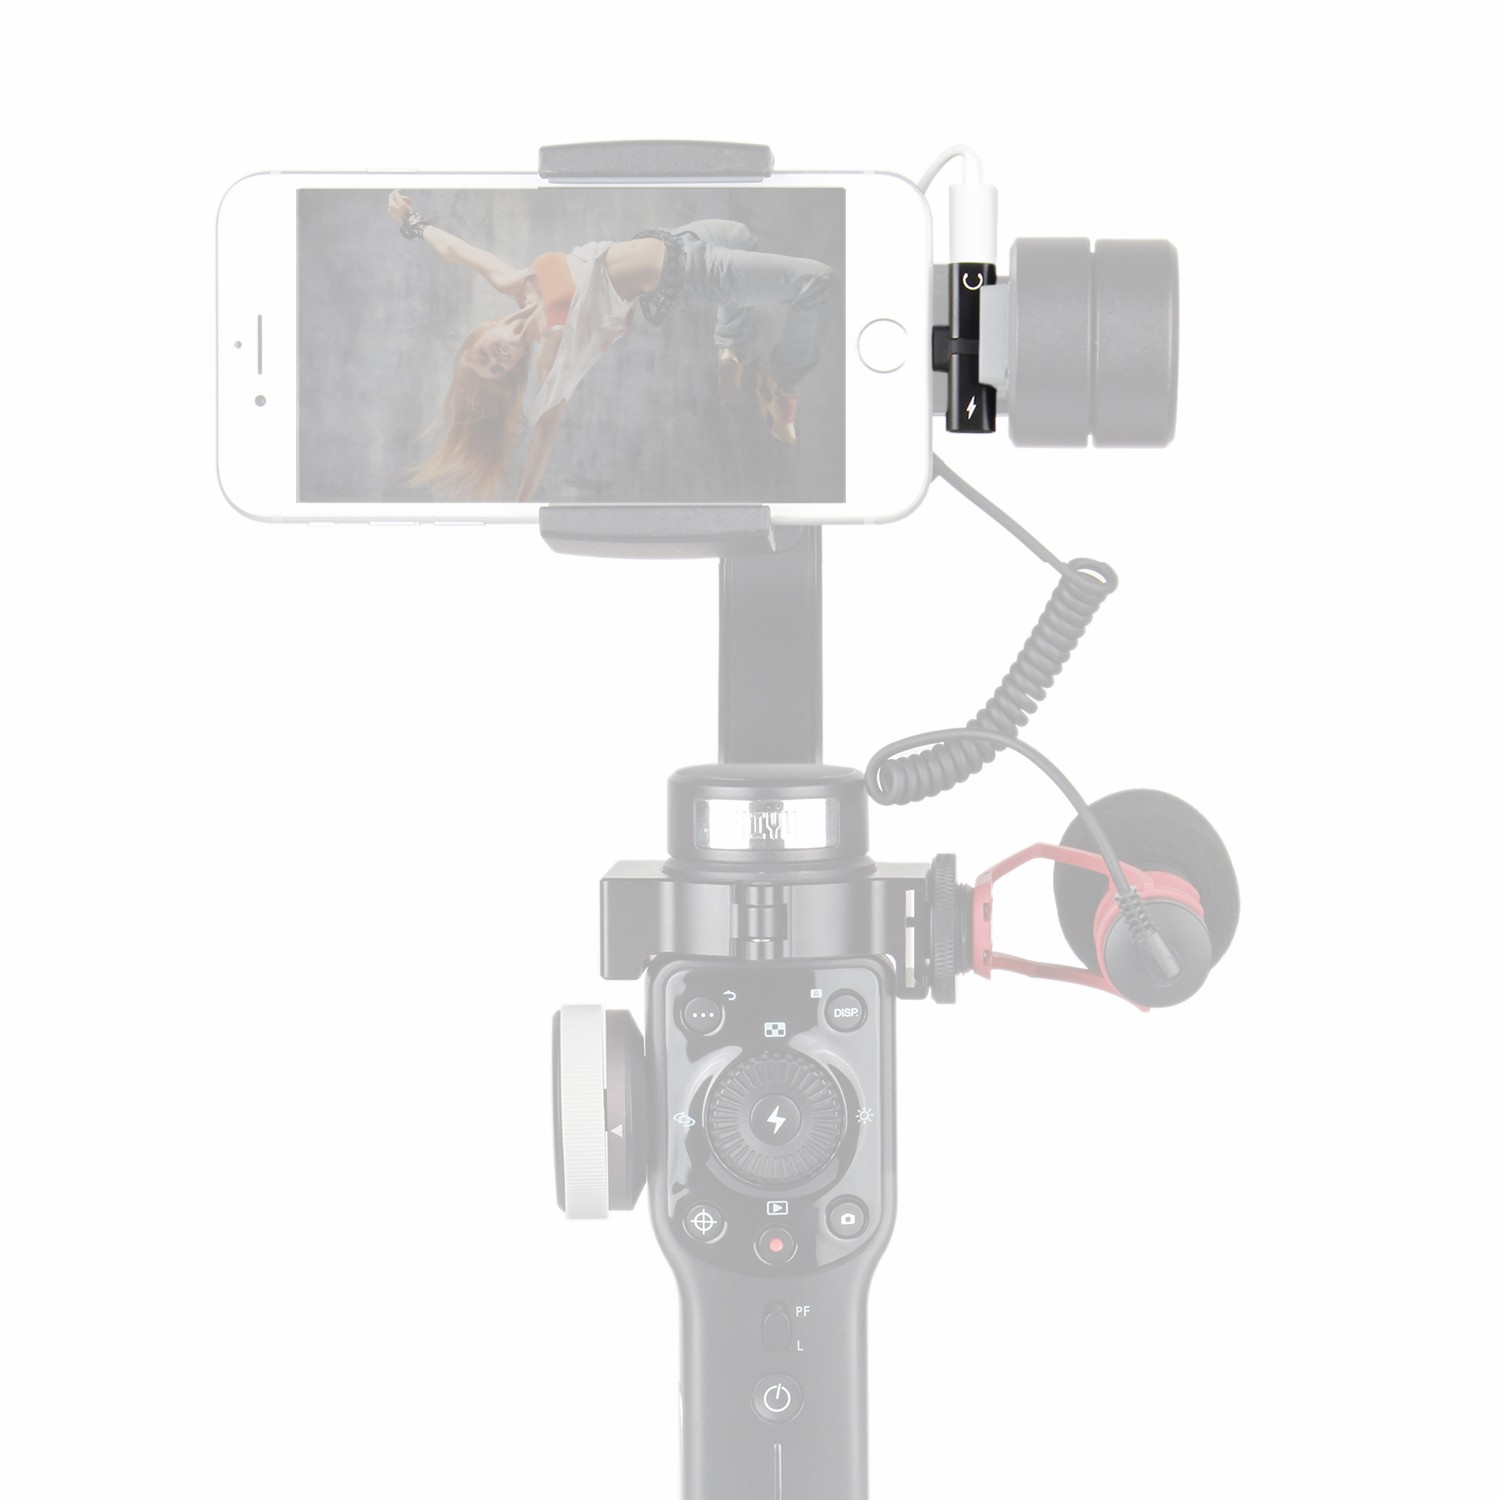 Holafoto 2in1 Lightning Adapter Charge Headphone Audio Dji Osmo Mobile 2 Smartphone Gimbal Attach Microphone To Such As Zhiyun Smooth Q 4 3 Feiyu